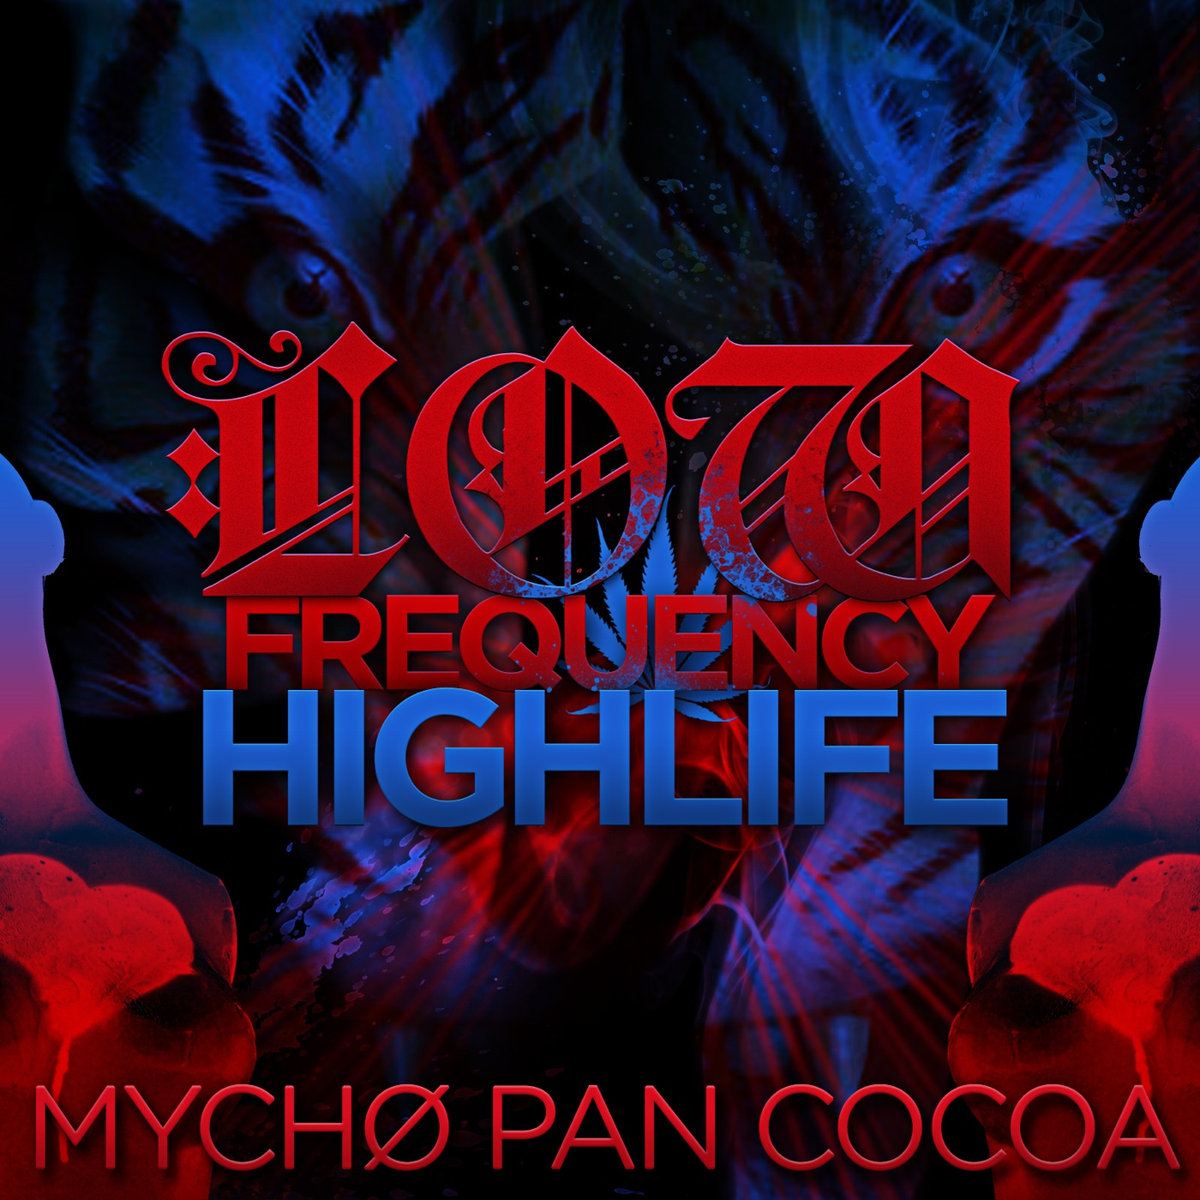 Mycho Pan Cocoa - Give Me A Sine @ 'Low Frequency High Life' album (electronic, dubstep)